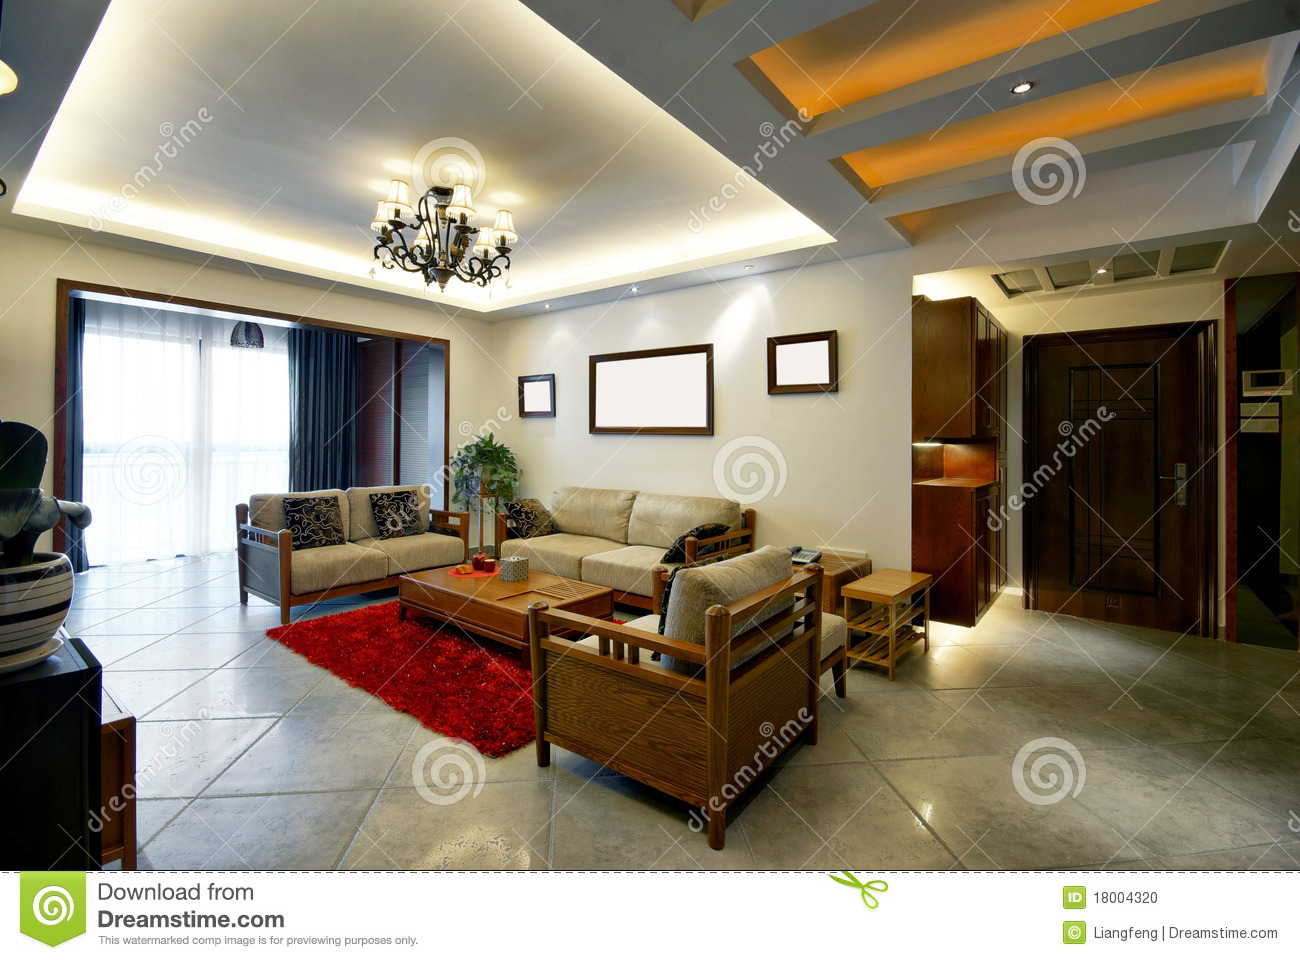 Beautiful home decor stock photo. Image of door, costly ... on Beautiful Home Decor  id=22018